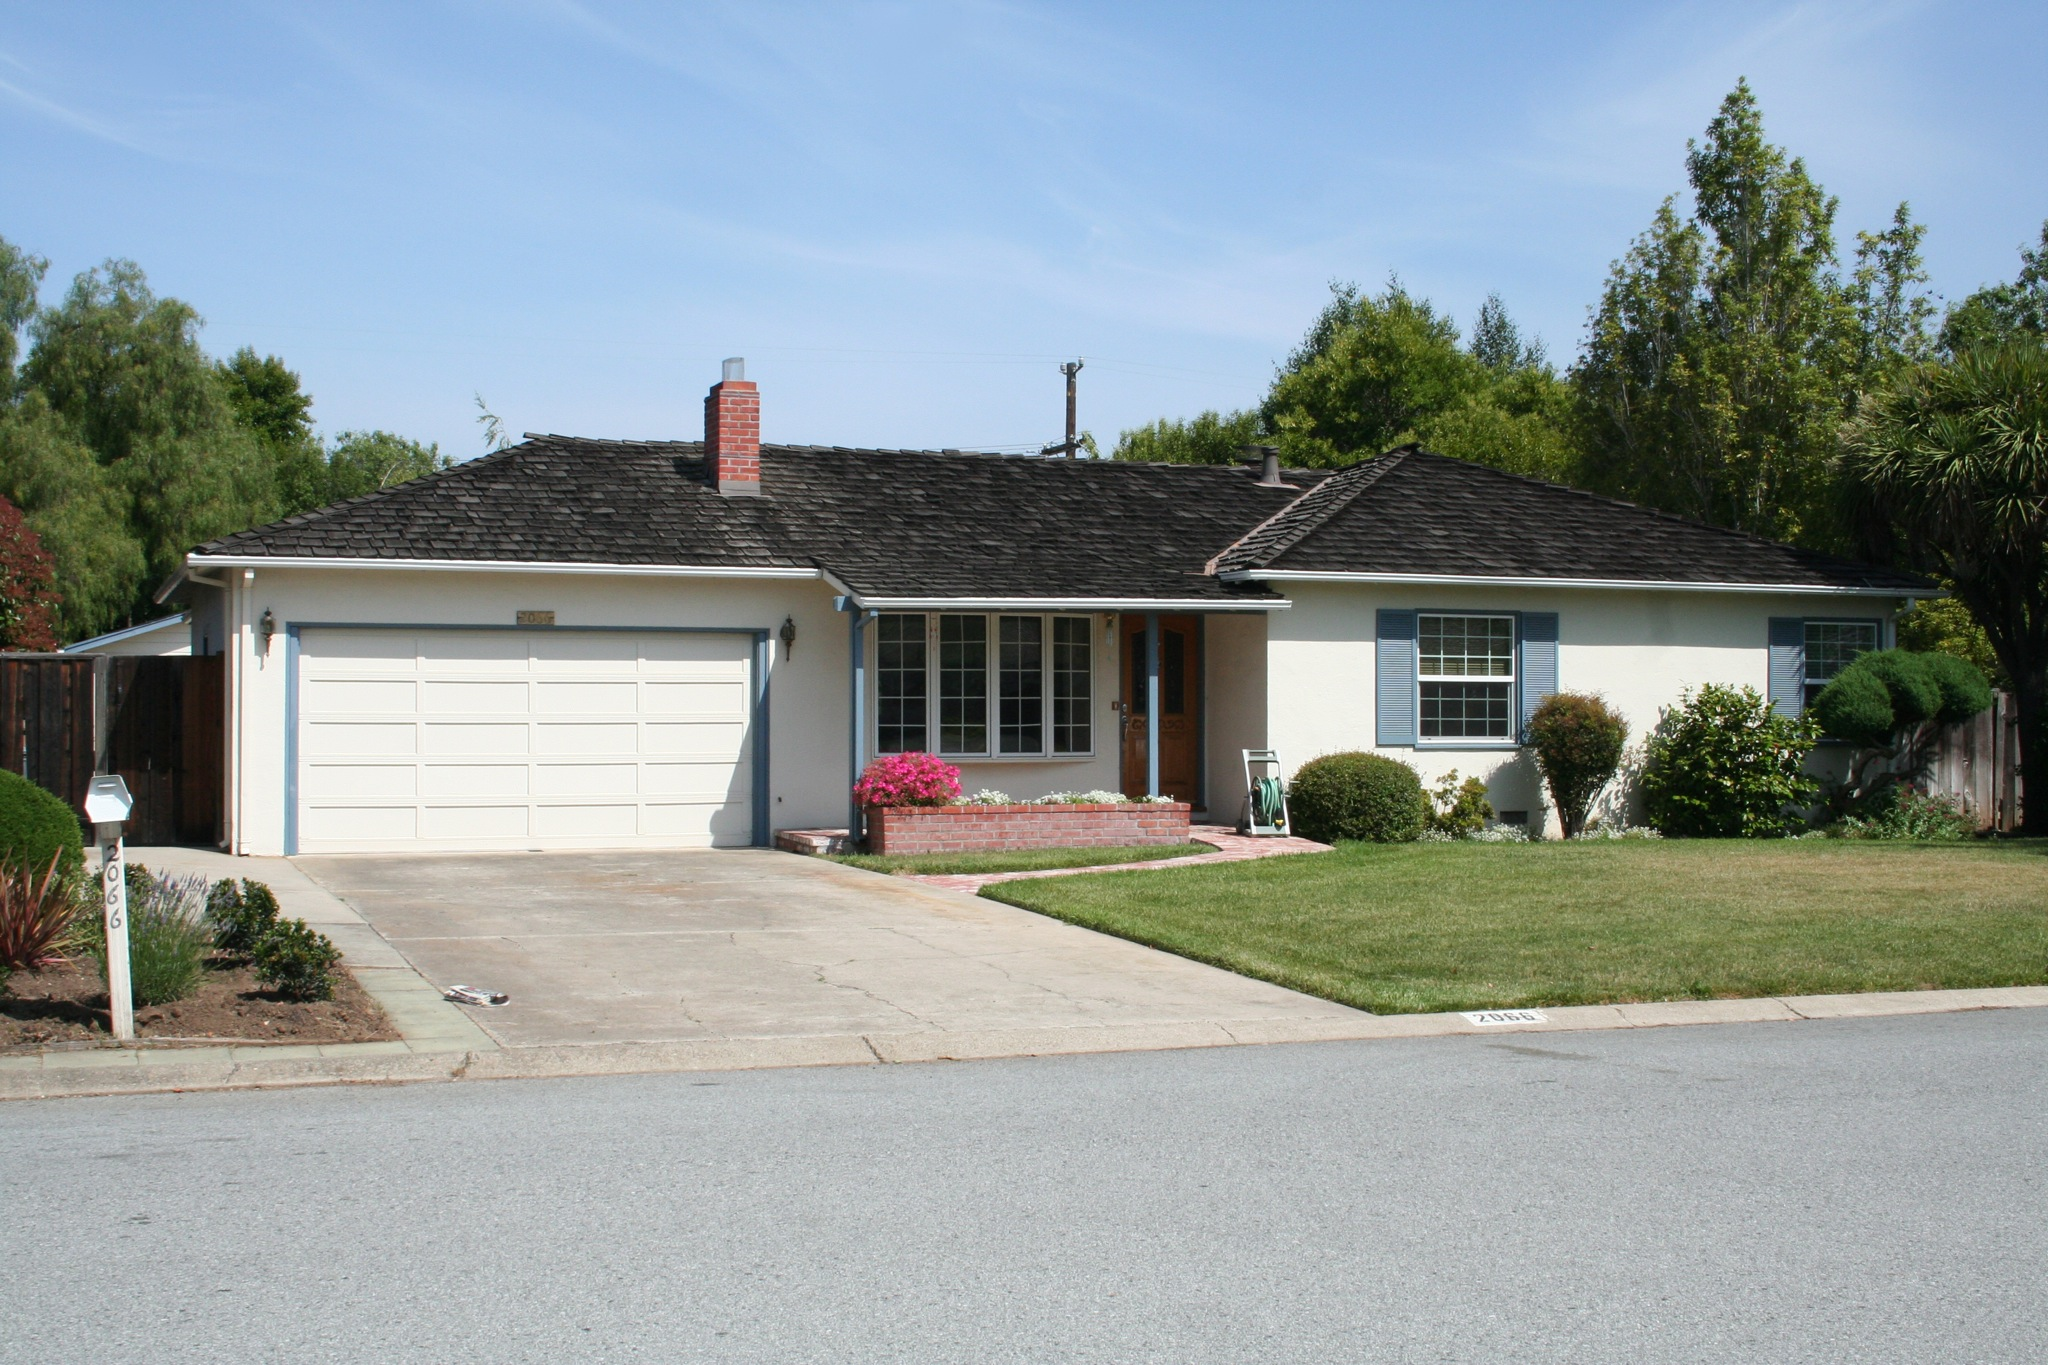 Home of Paul and Clara Jobs, on Crist Drive in Los Altos, California. Steve Jobs formed Apple Computer in its garage with Steve Wozniak and Ronald Wayne in 1976. Wayne stayed only a short time leaving Jobs and Wozniak as the primary co-founders of the company.